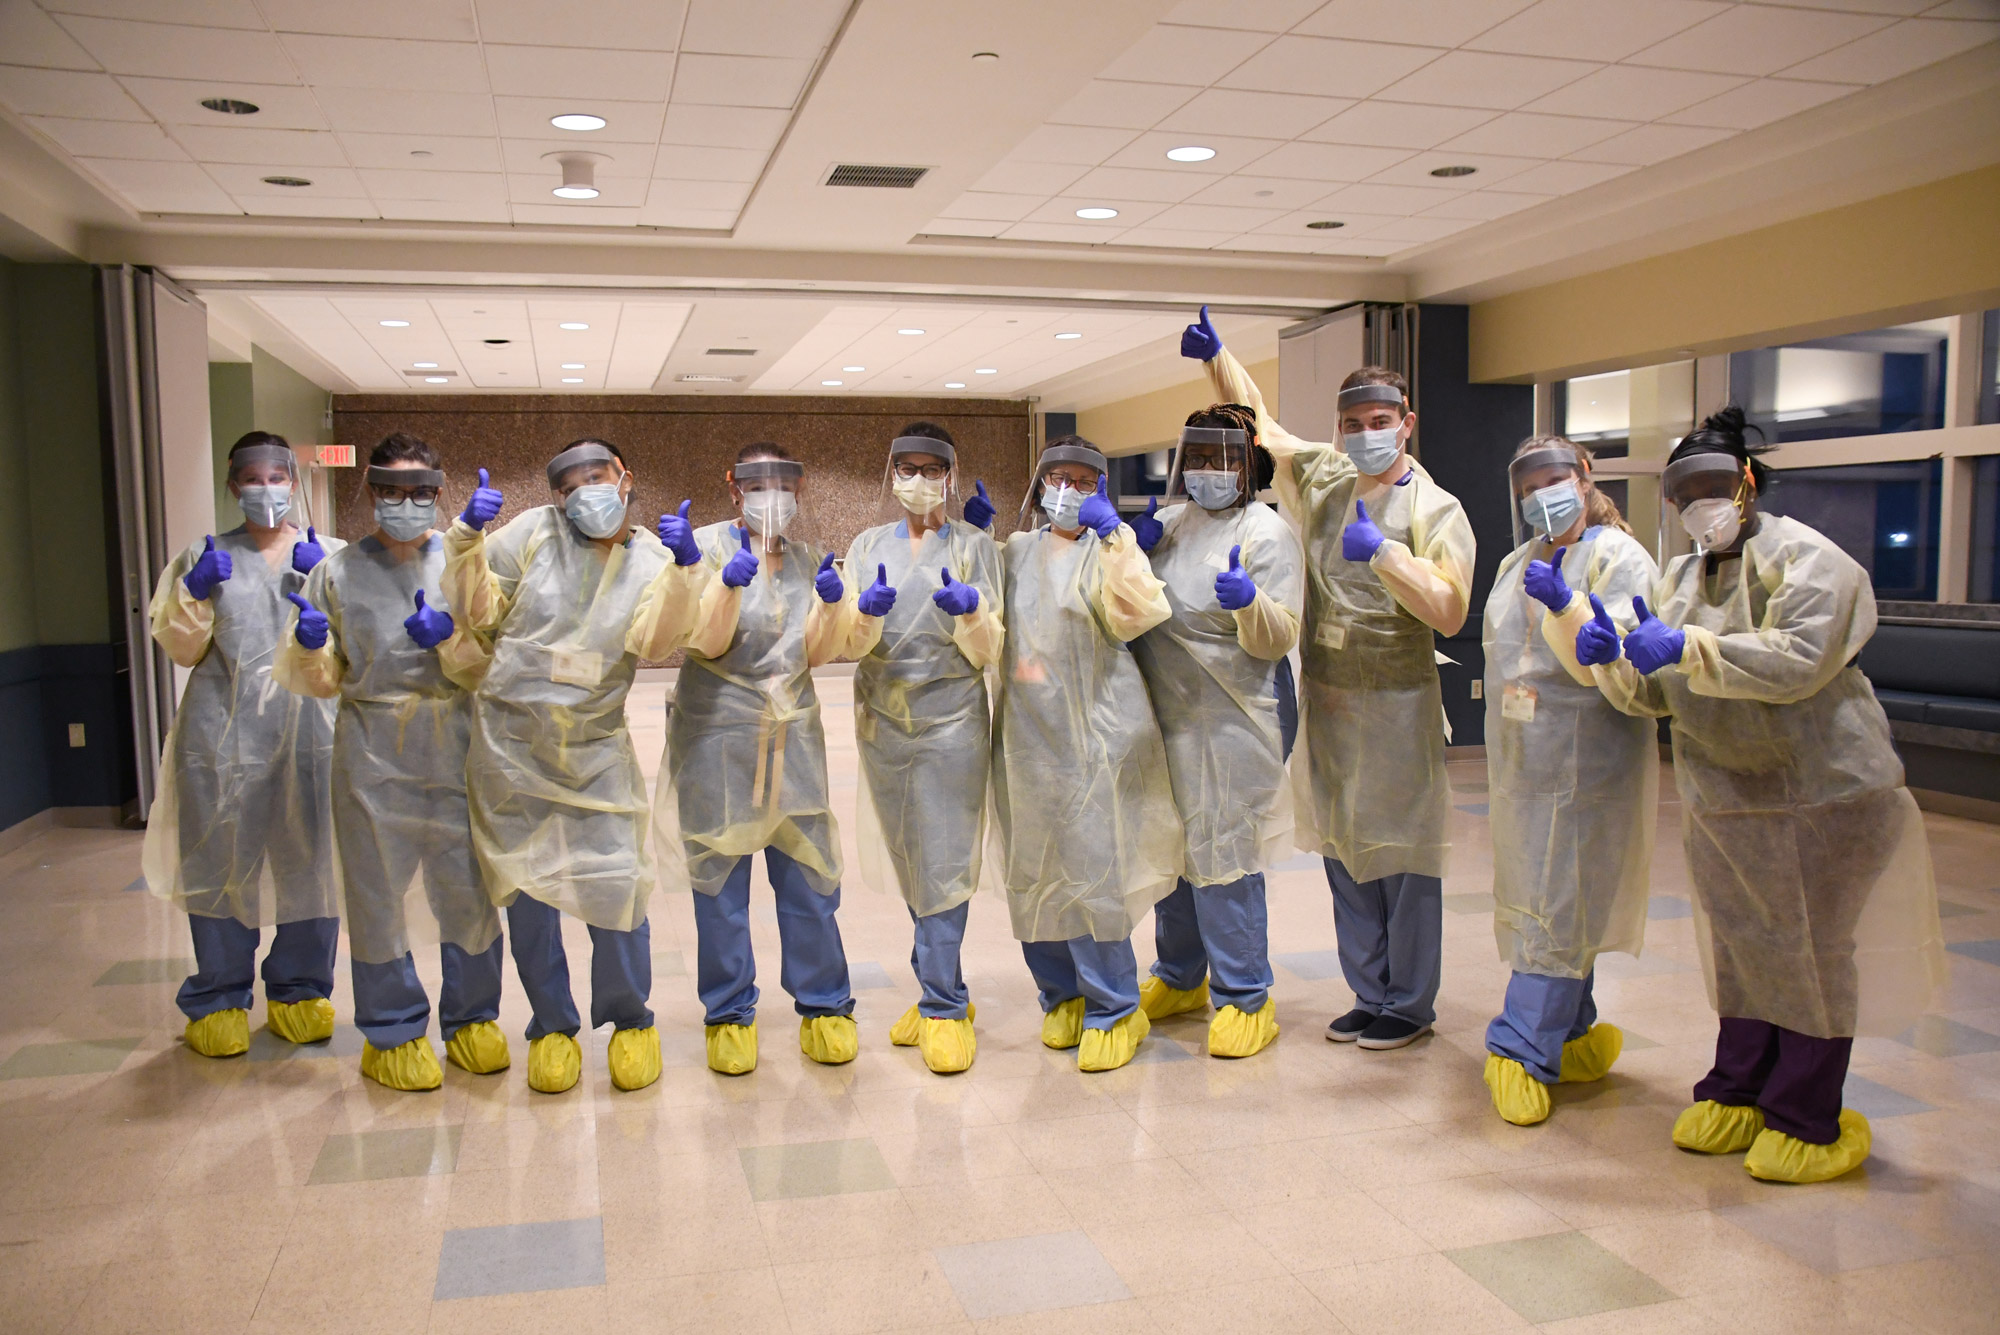 Members of the medical team at the Newton Pavilion COVID-19 recuperation unit for homeless patients, after putting on personal protective equipment for the unit's opening on April 9, 2020.